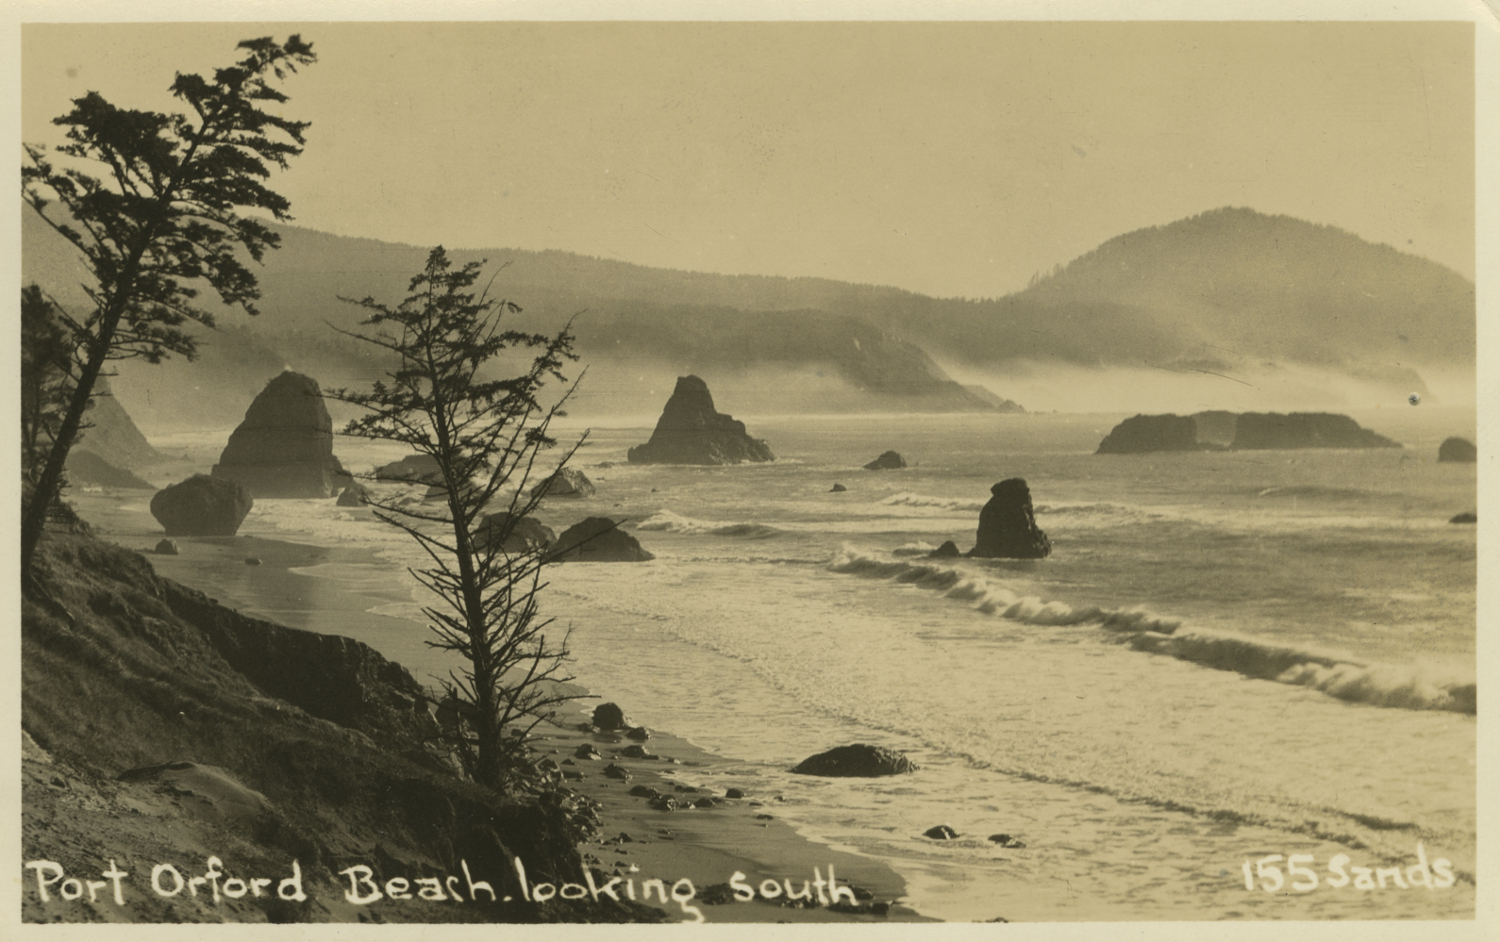 Port Orford Beach Looking South - Sands